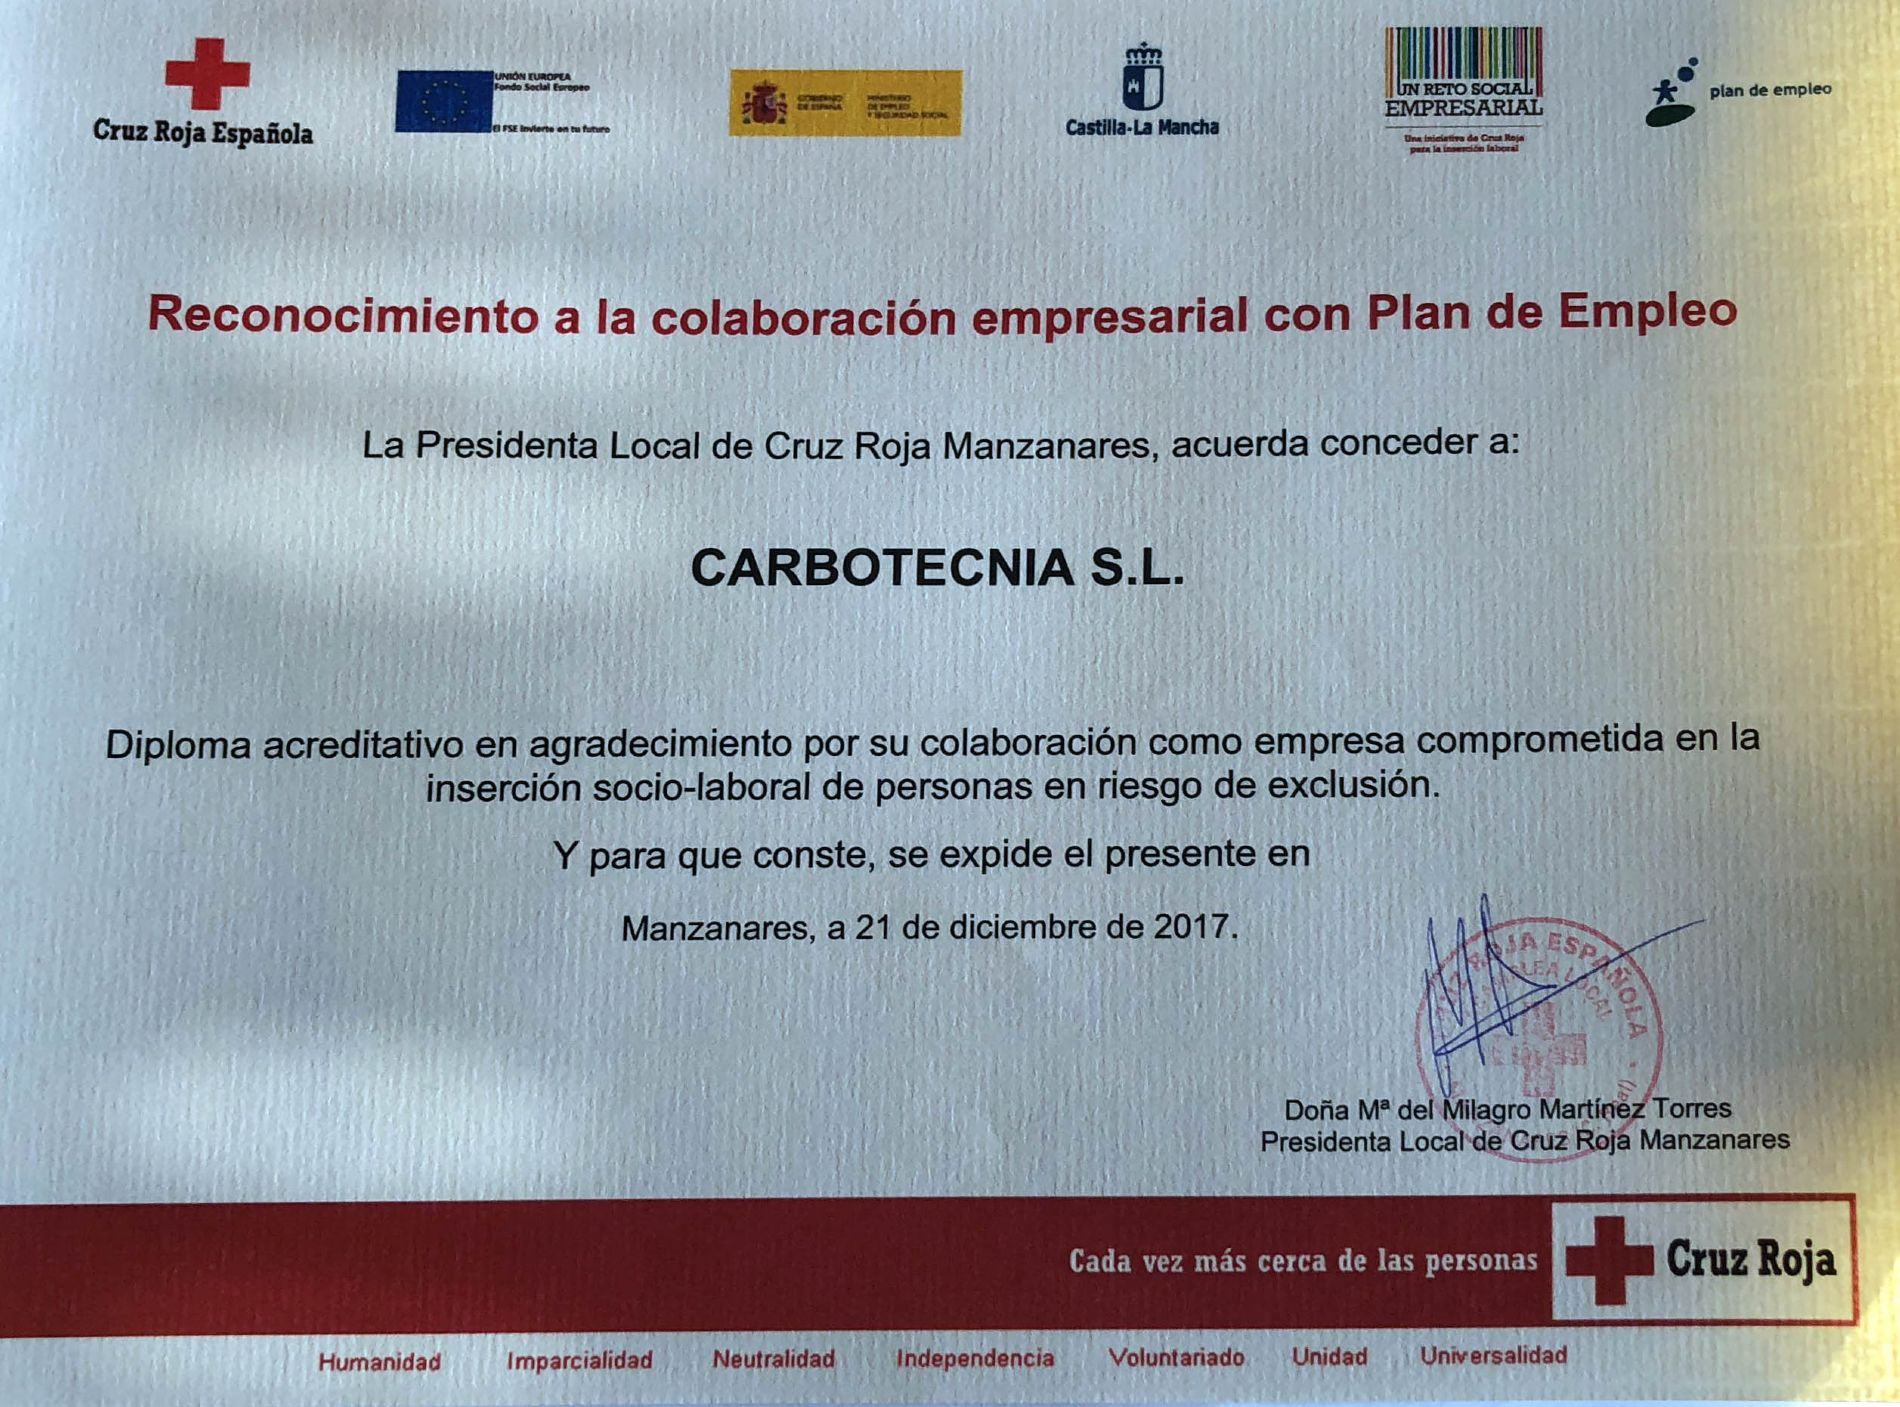 Carbotecnia receives the recognition from Red Cross